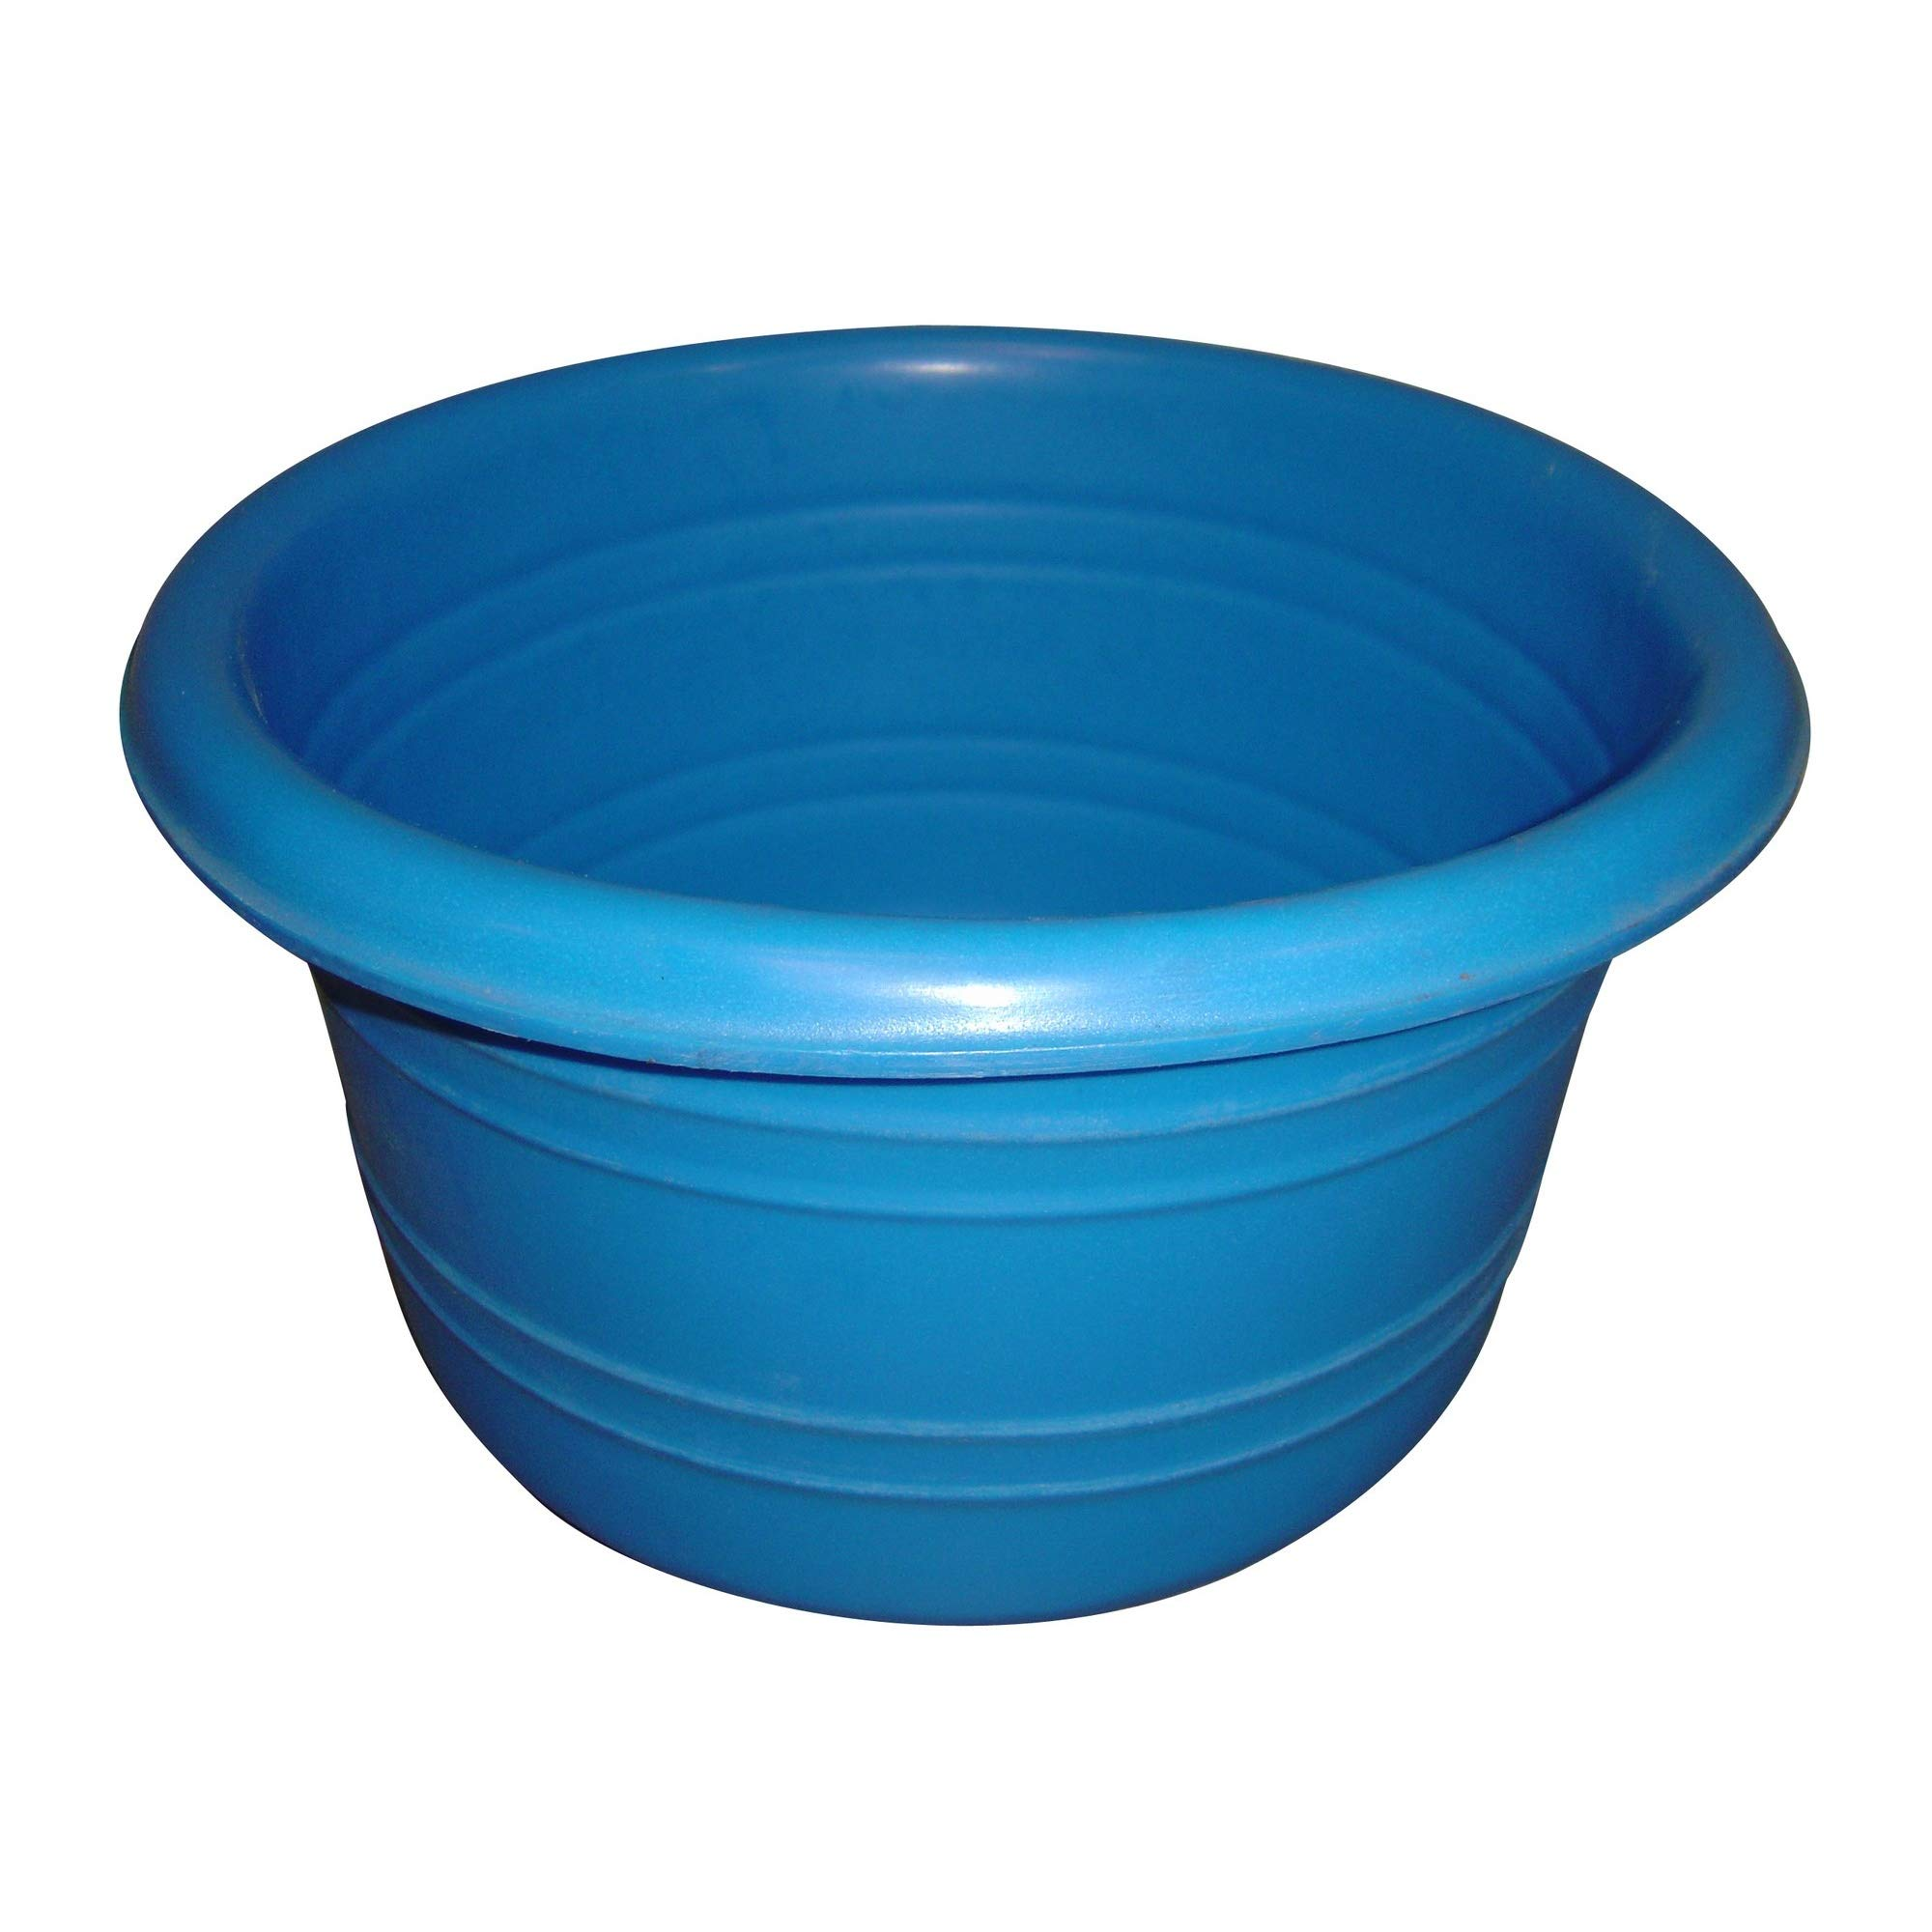 Stubbs Water Butt (One Size) (Blue) by Stubbs